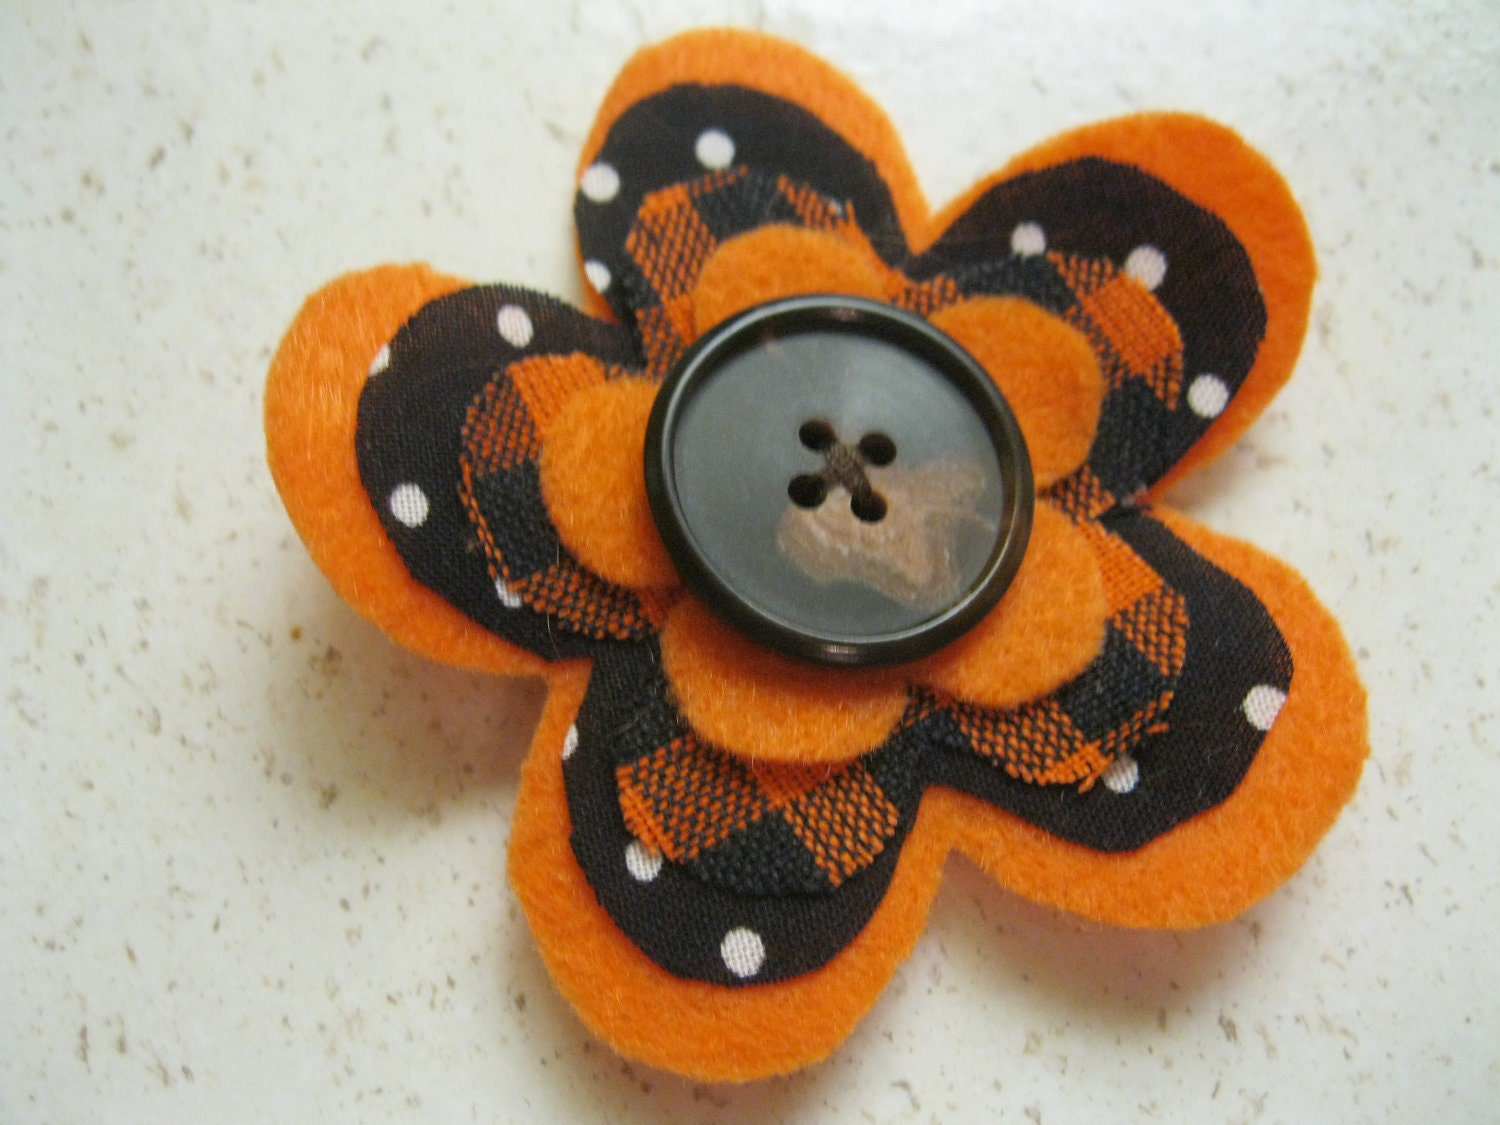 Fabric and Felt Flower Hair Clip in Orange, Black Plaid, and Black, White Polka Dots with Button for Fall, Autumn, or Halloween